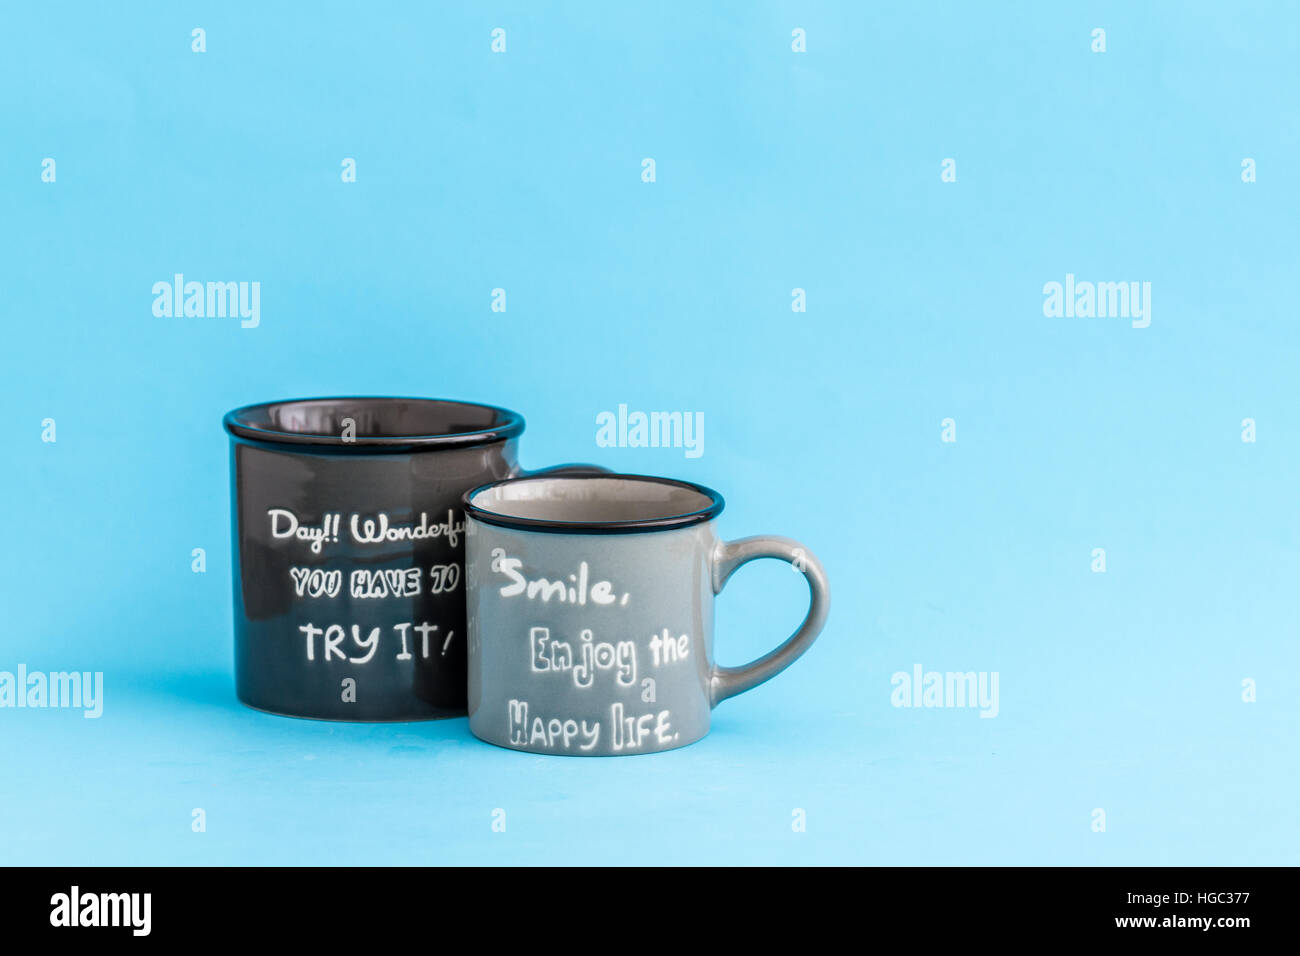 Creative Cute Coffee Mugs On Blue Background With Copy Space Stock Photo Alamy